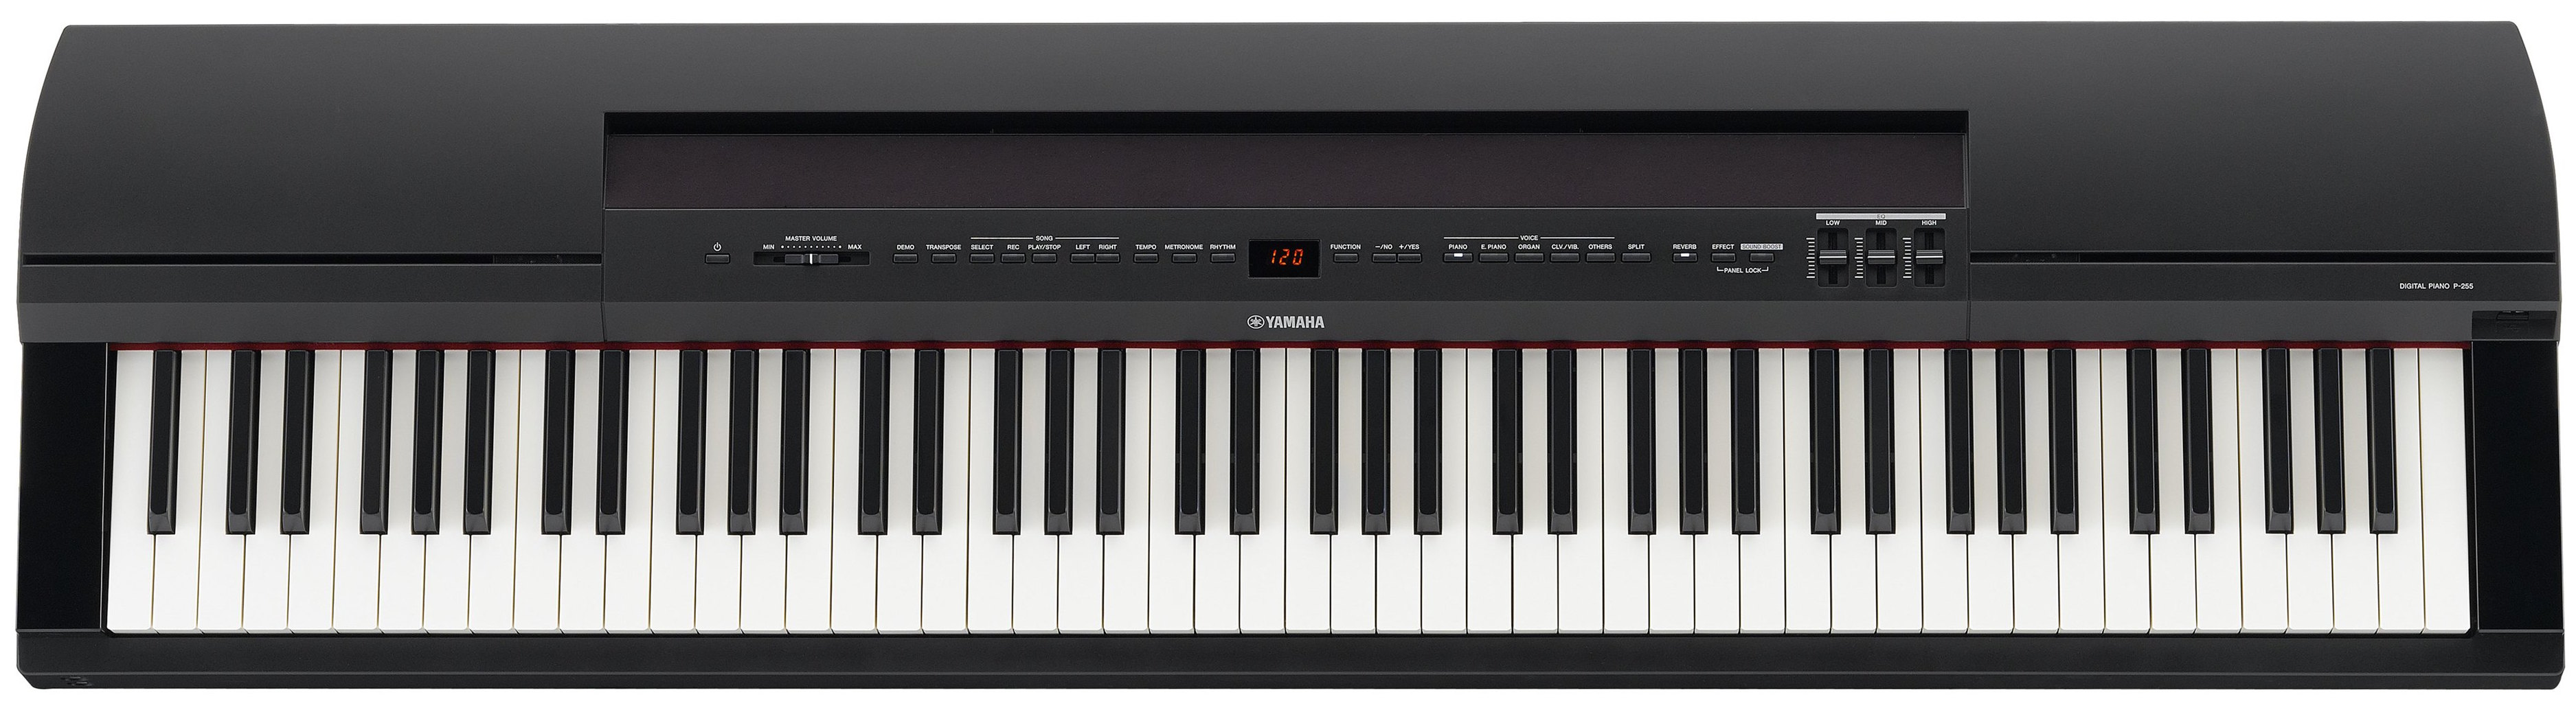 Yamaha P-255 88-key Stage Piano